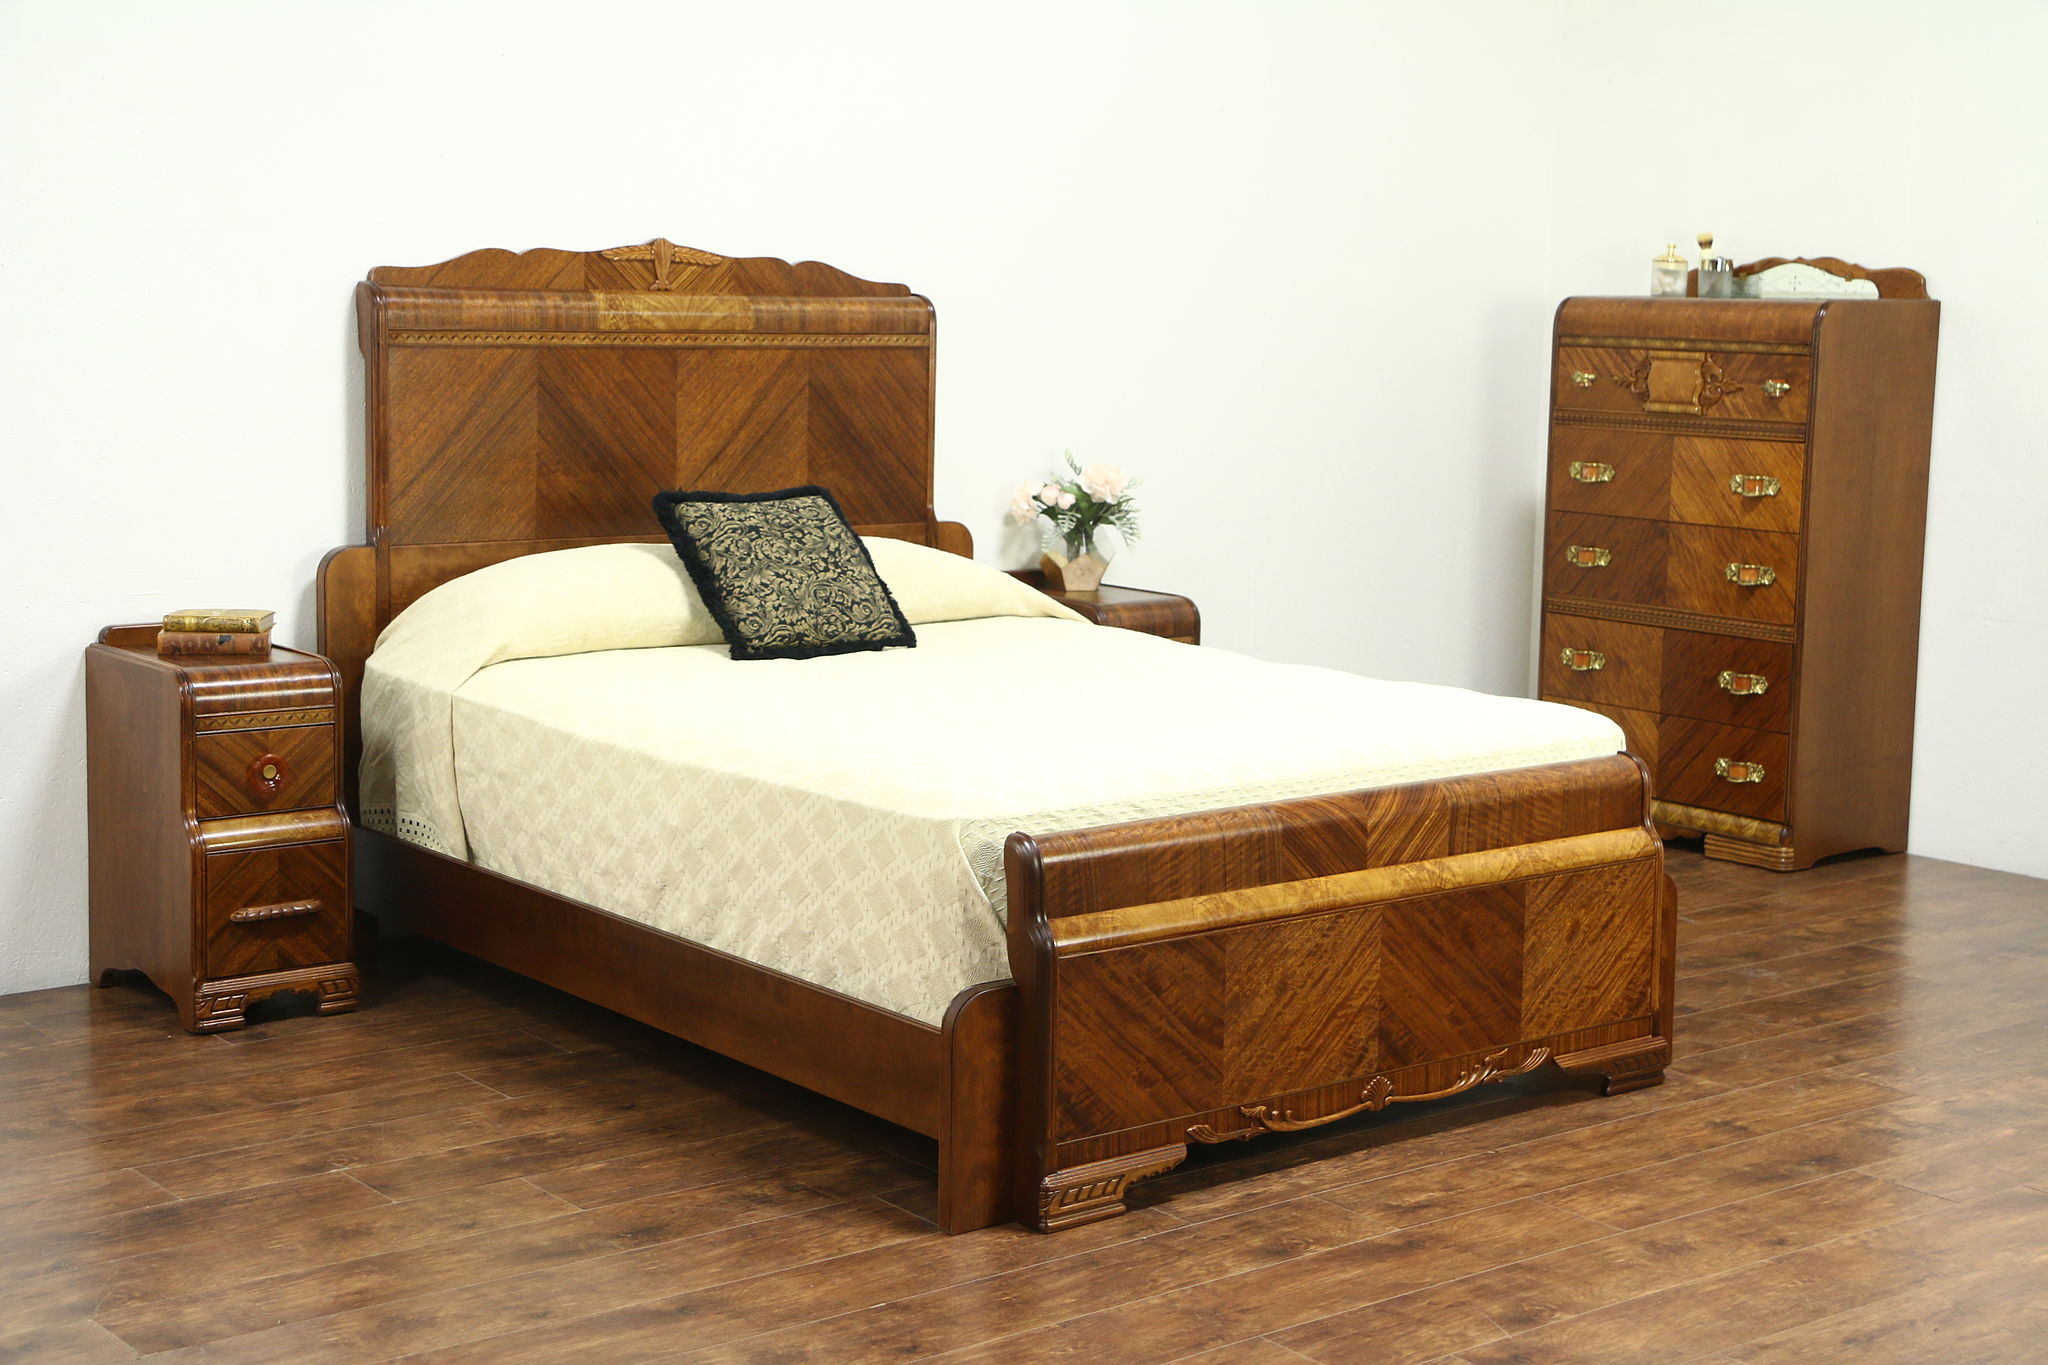 Sold Waterfall Art Deco Vintage Bedroom Set Queen Size Bed Chest 2 Nightstands Harp Gallery Antiques Furniture